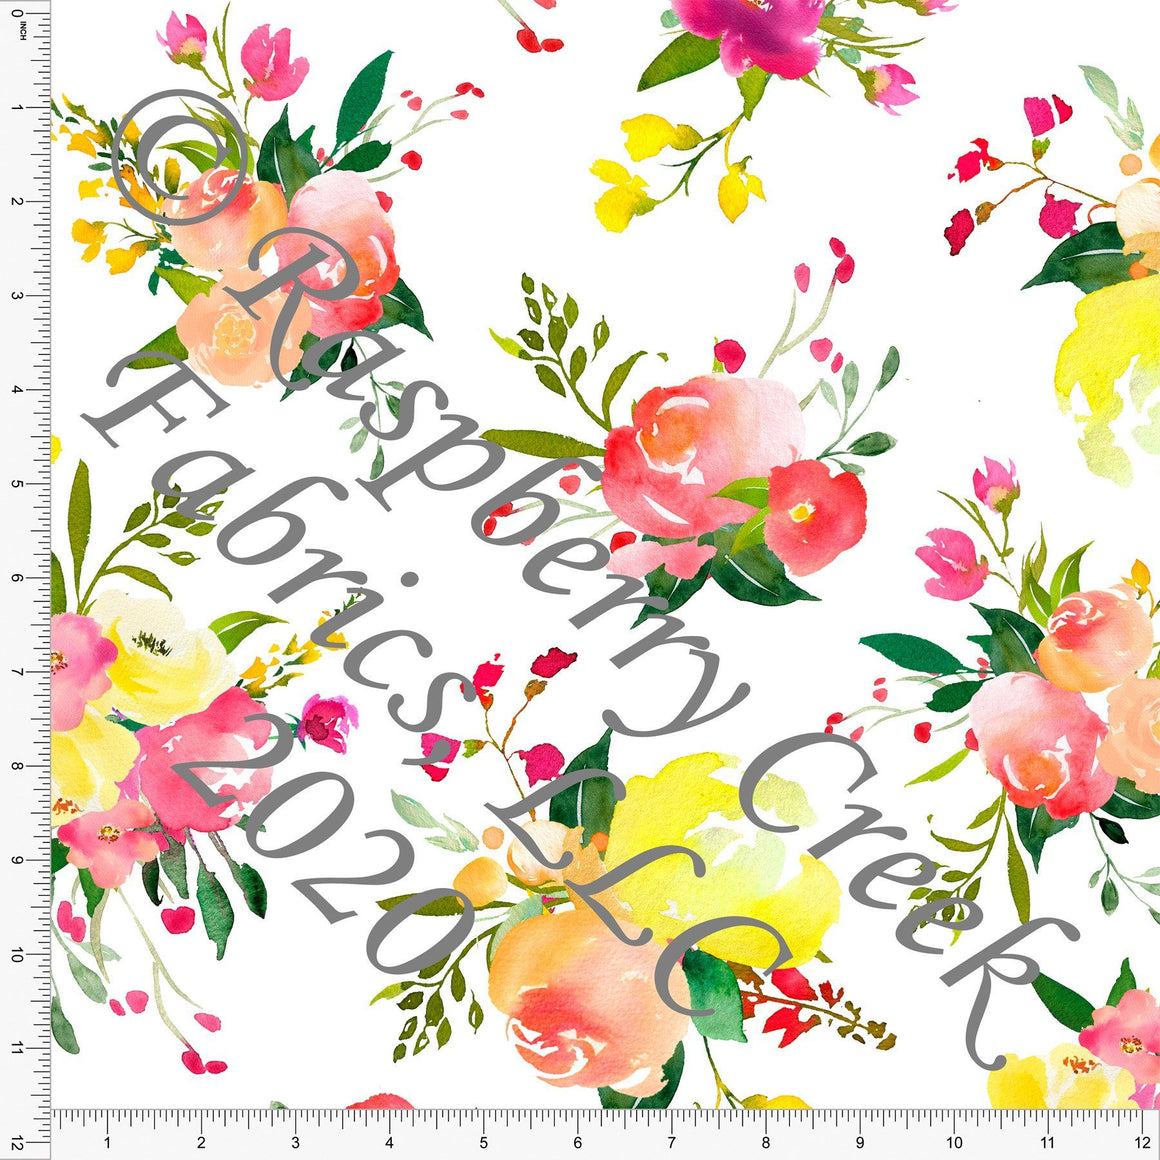 Magenta Fuchsia Yellow and Peach Large Watercolor Floral, Spring Florals for Club Fabrics - Raspberry Creek Fabrics